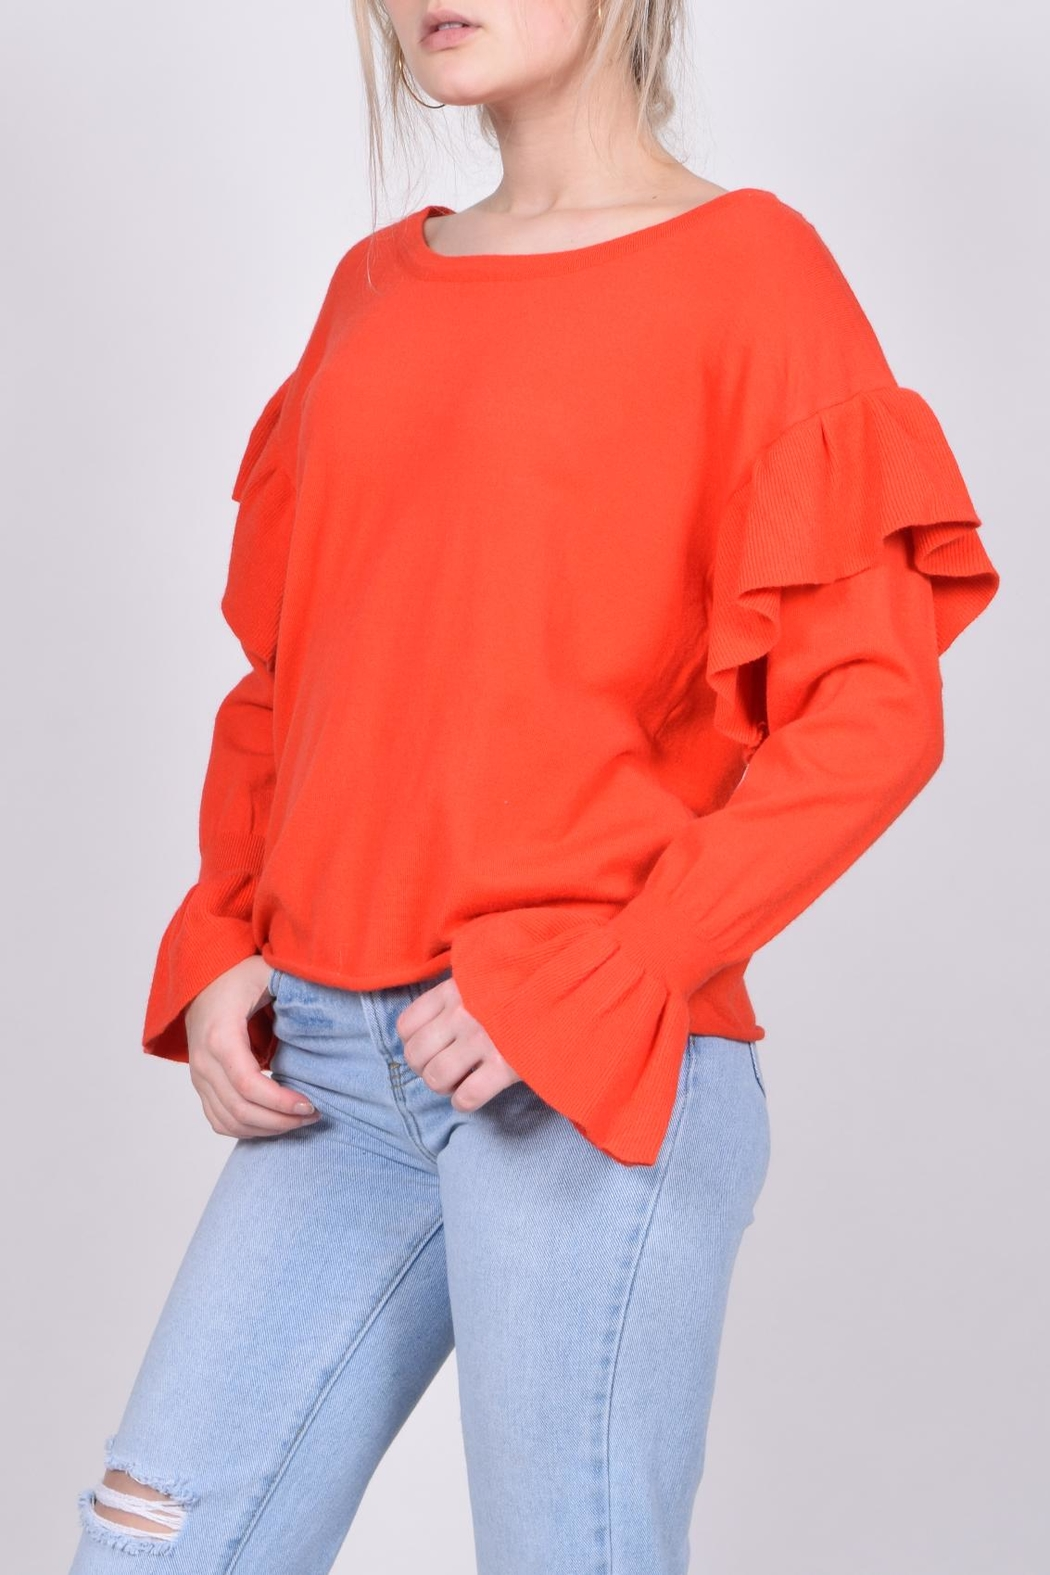 Unbranded Red Ruffle Sweater - Side Cropped Image